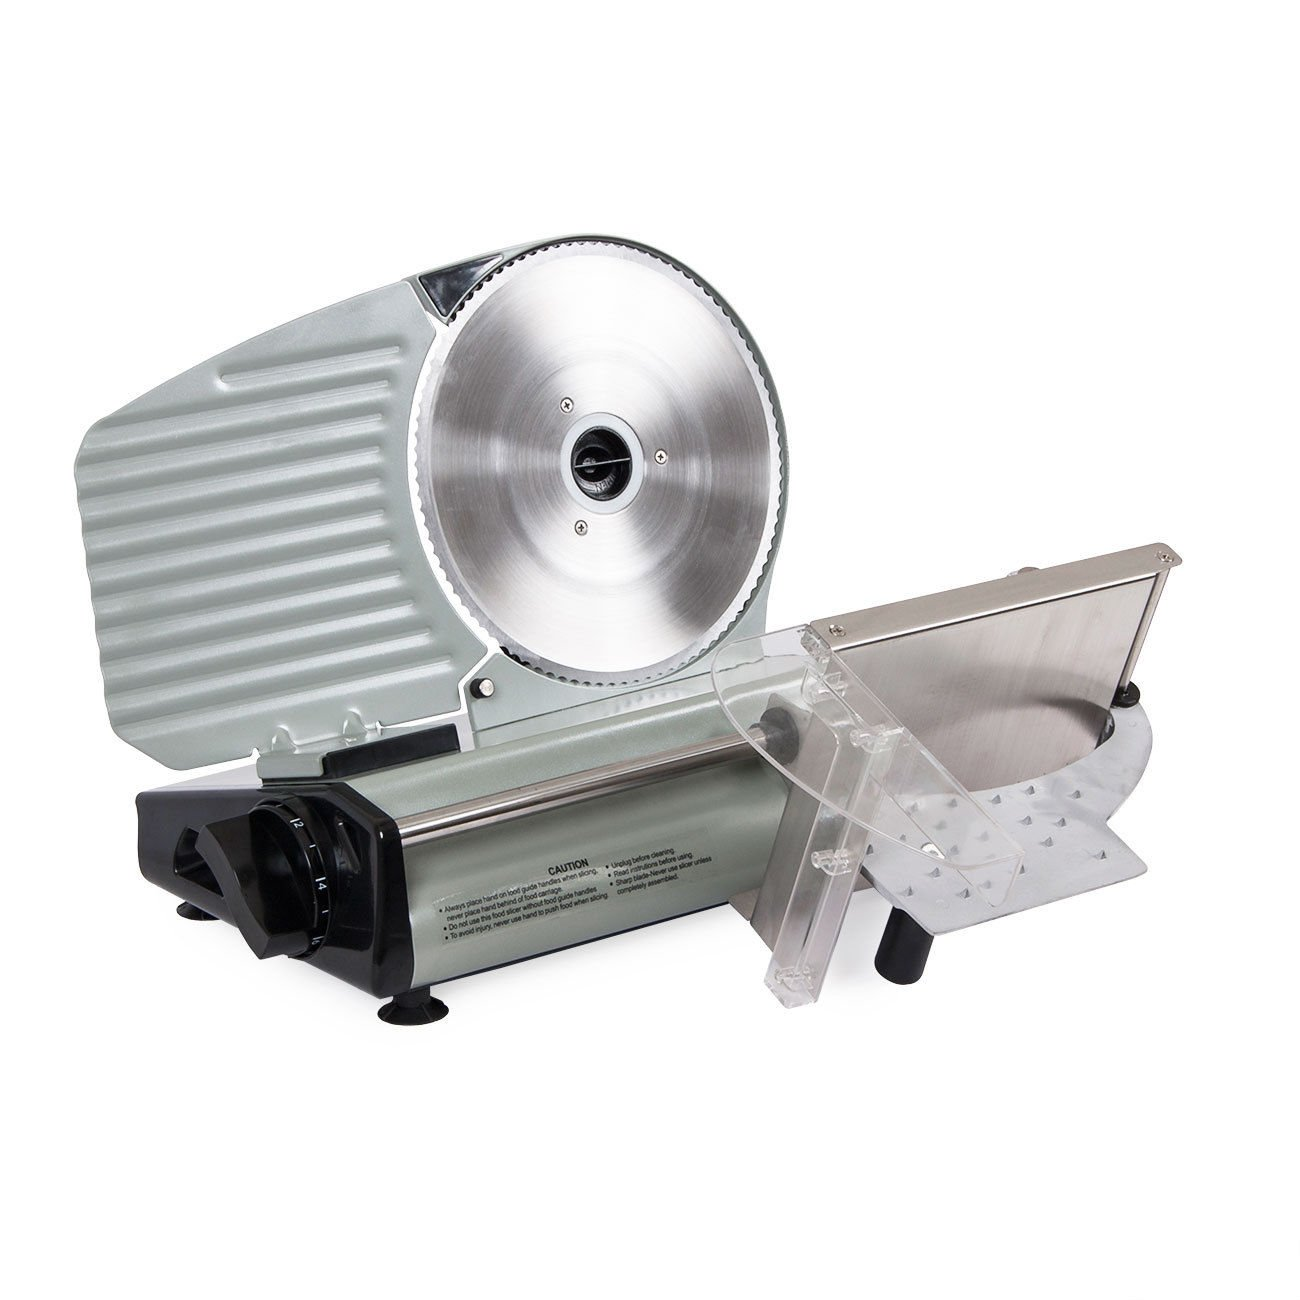 Electric Commercial Meat Slicer, Machine Food Cutting, Deli Slice Veggie Cutter Kitchen 8.7'' Blade 180W by Snow Shop Everything (Image #7)